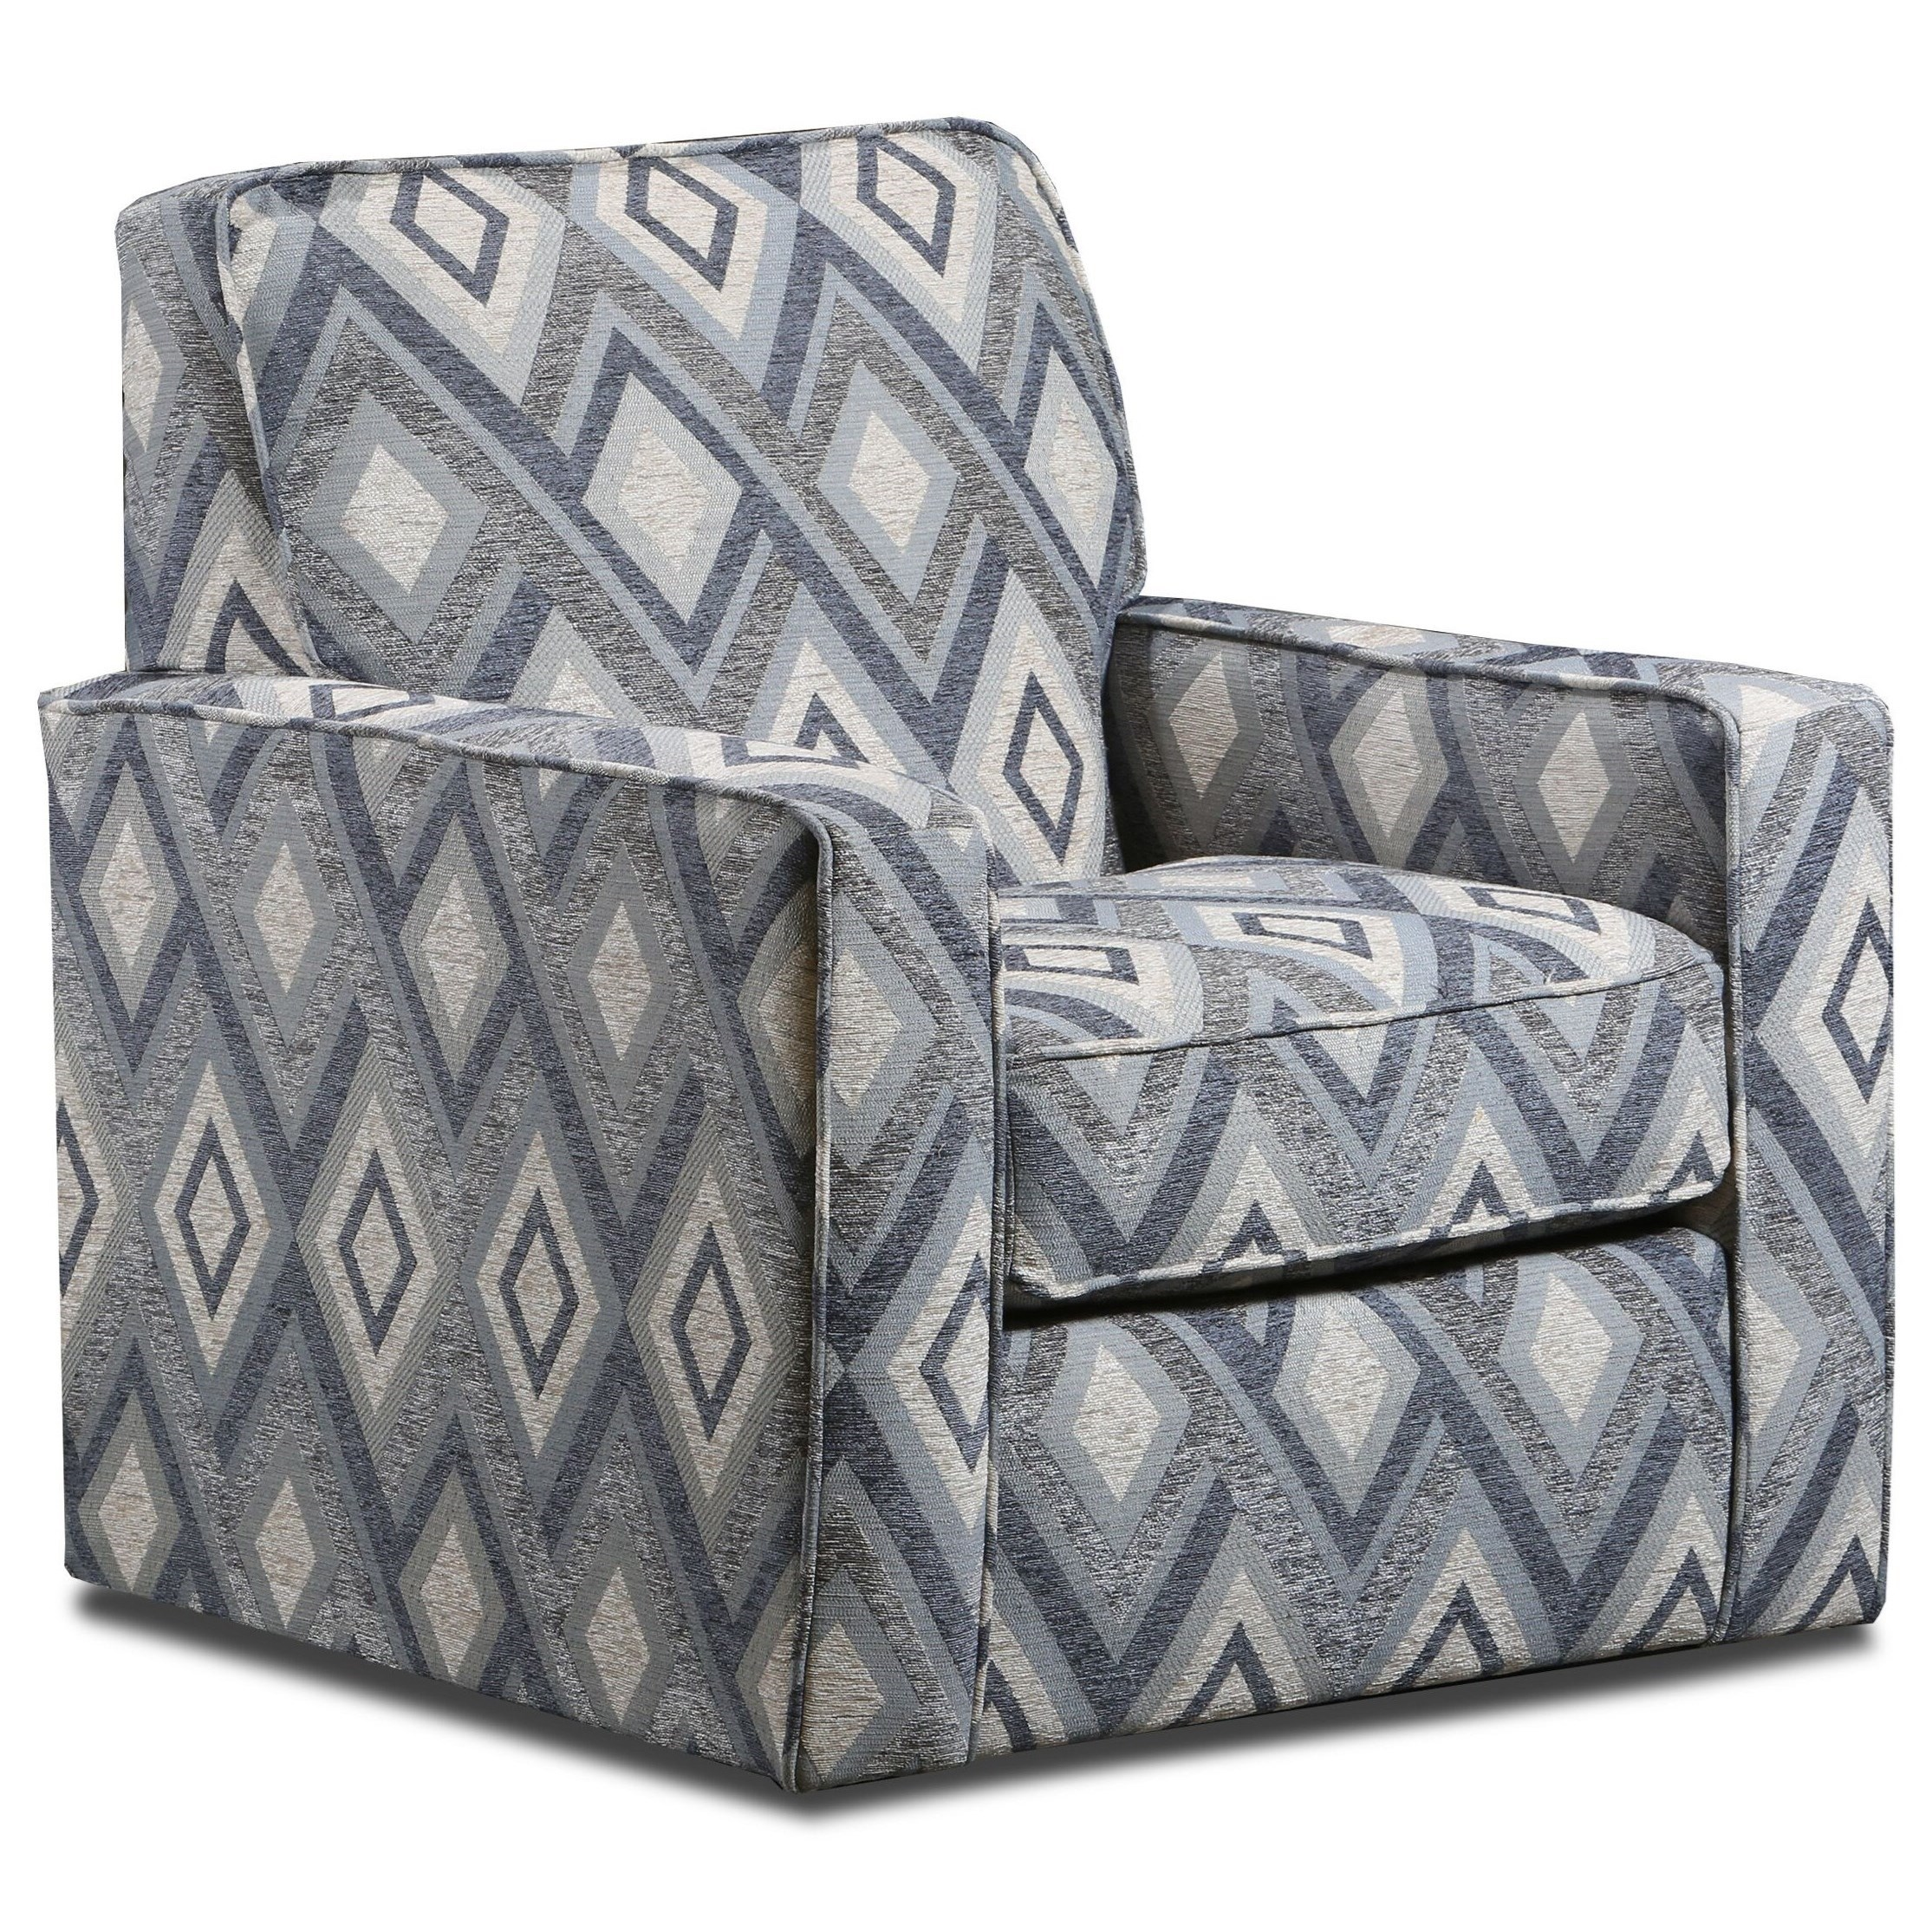 8200 Accent Chair by Peak Living at Prime Brothers Furniture